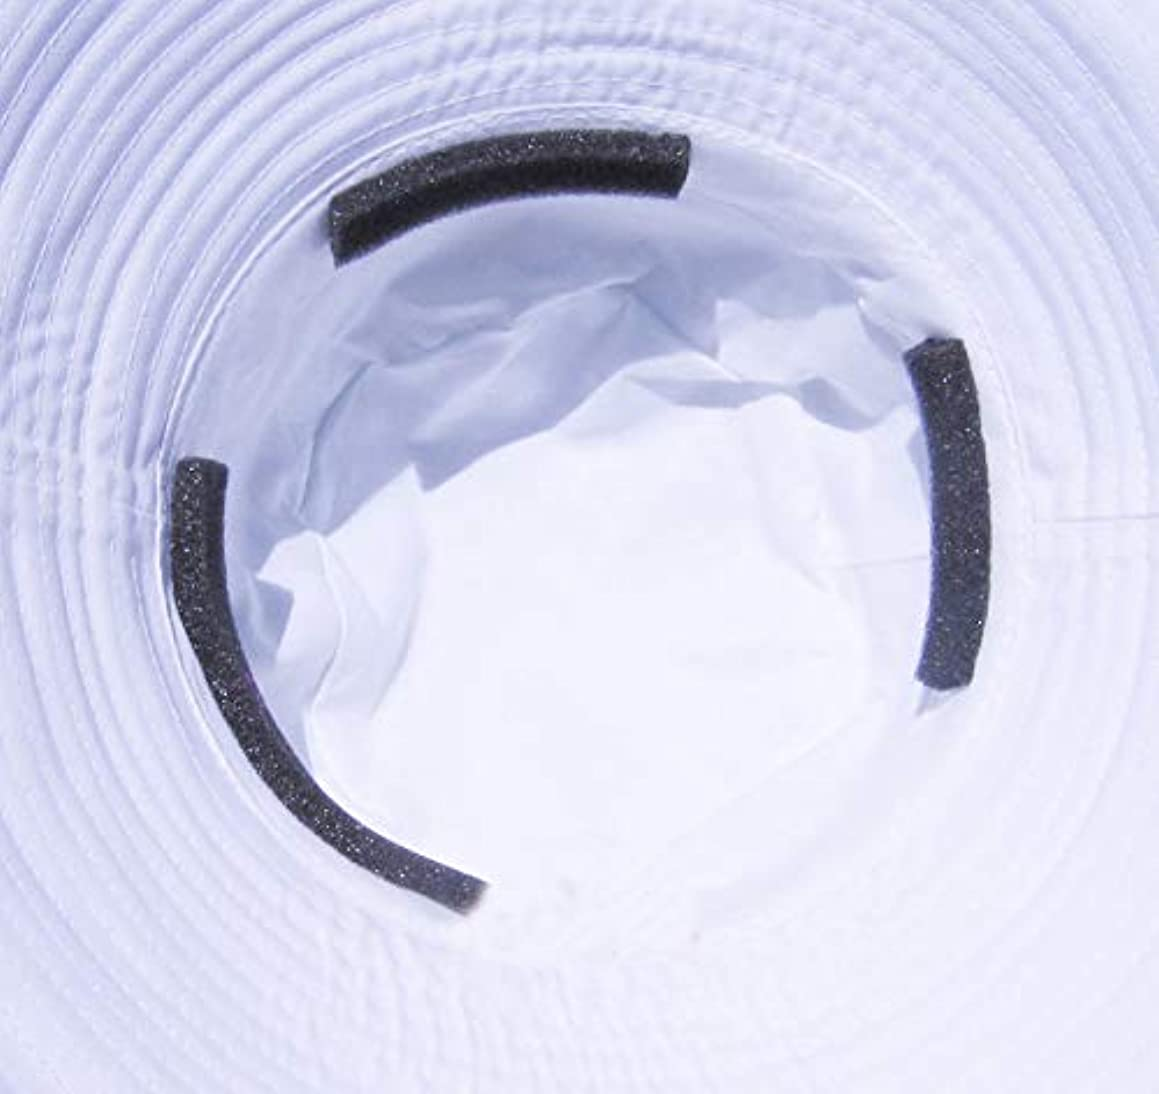 Hat Size Reducer Sizing Tape Foam Inserts Premium Quality Soft On Skin 72 Inch Roll Sizes 6 to 10 Hats Black